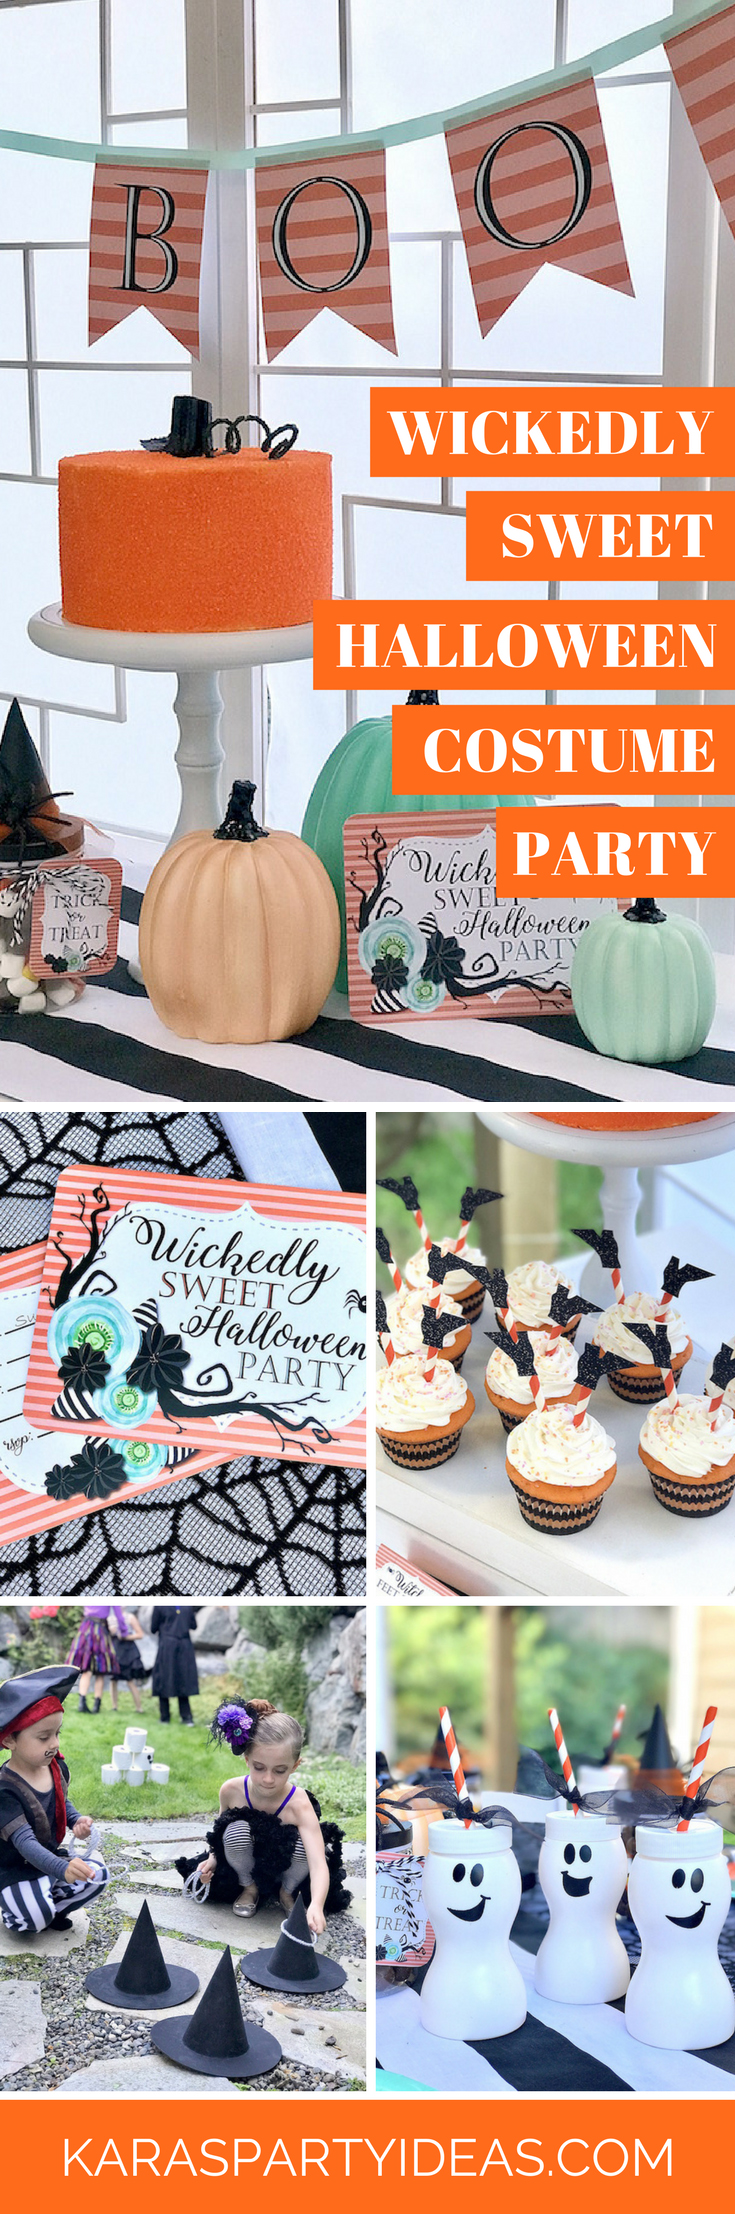 Wickedly Sweet Halloween Costume Party via Kara's Party Ideas - KarasPartyIdeas.com